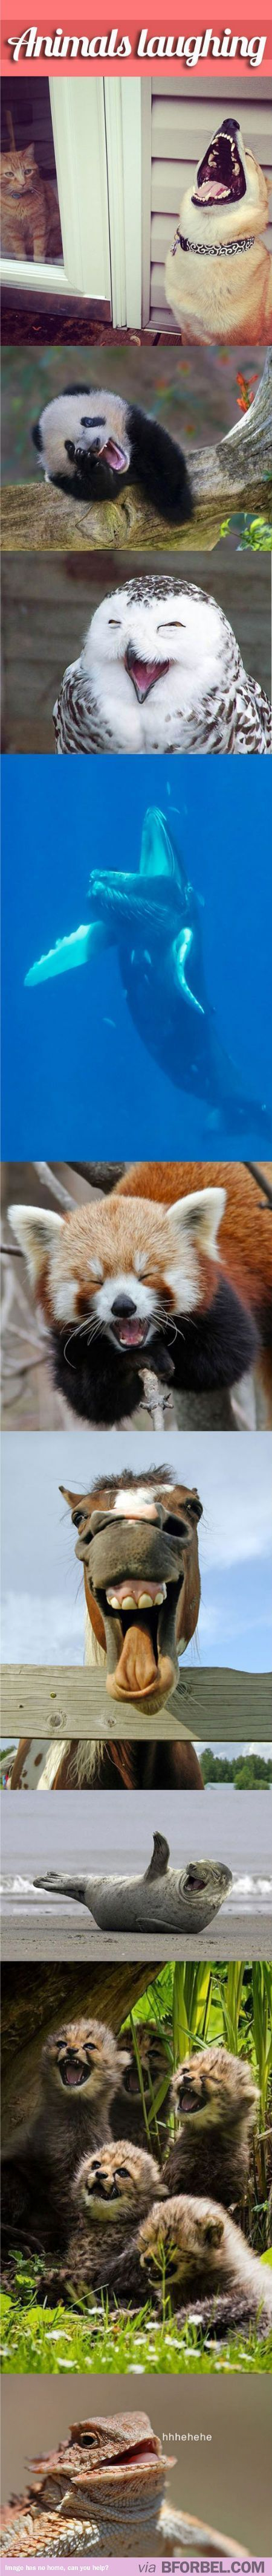 Animals laughing. so stinkin cute!